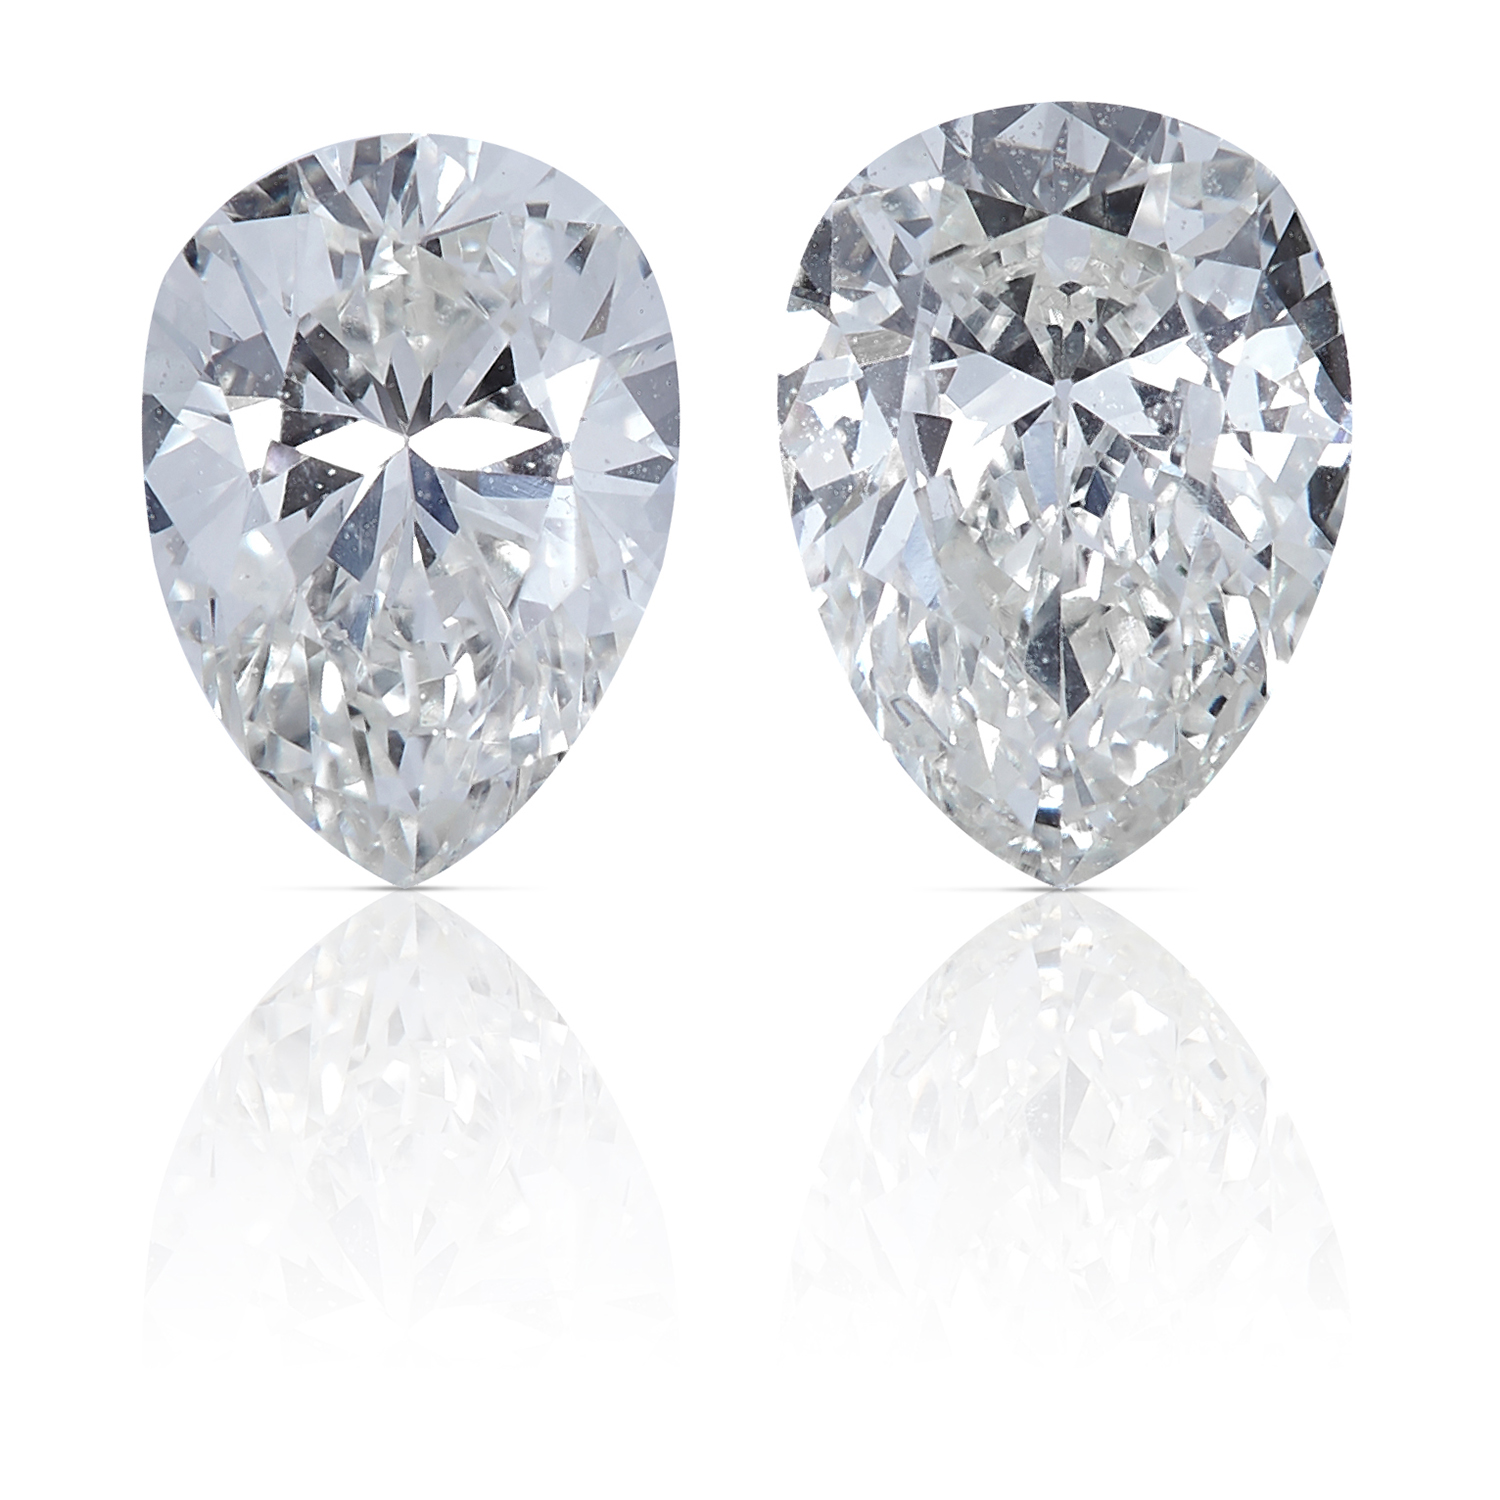 TWO PEAR SHAPED BRILLIANT CUT DIAMONDS, TOTALLING 0.65cts, UNMOUNTED.